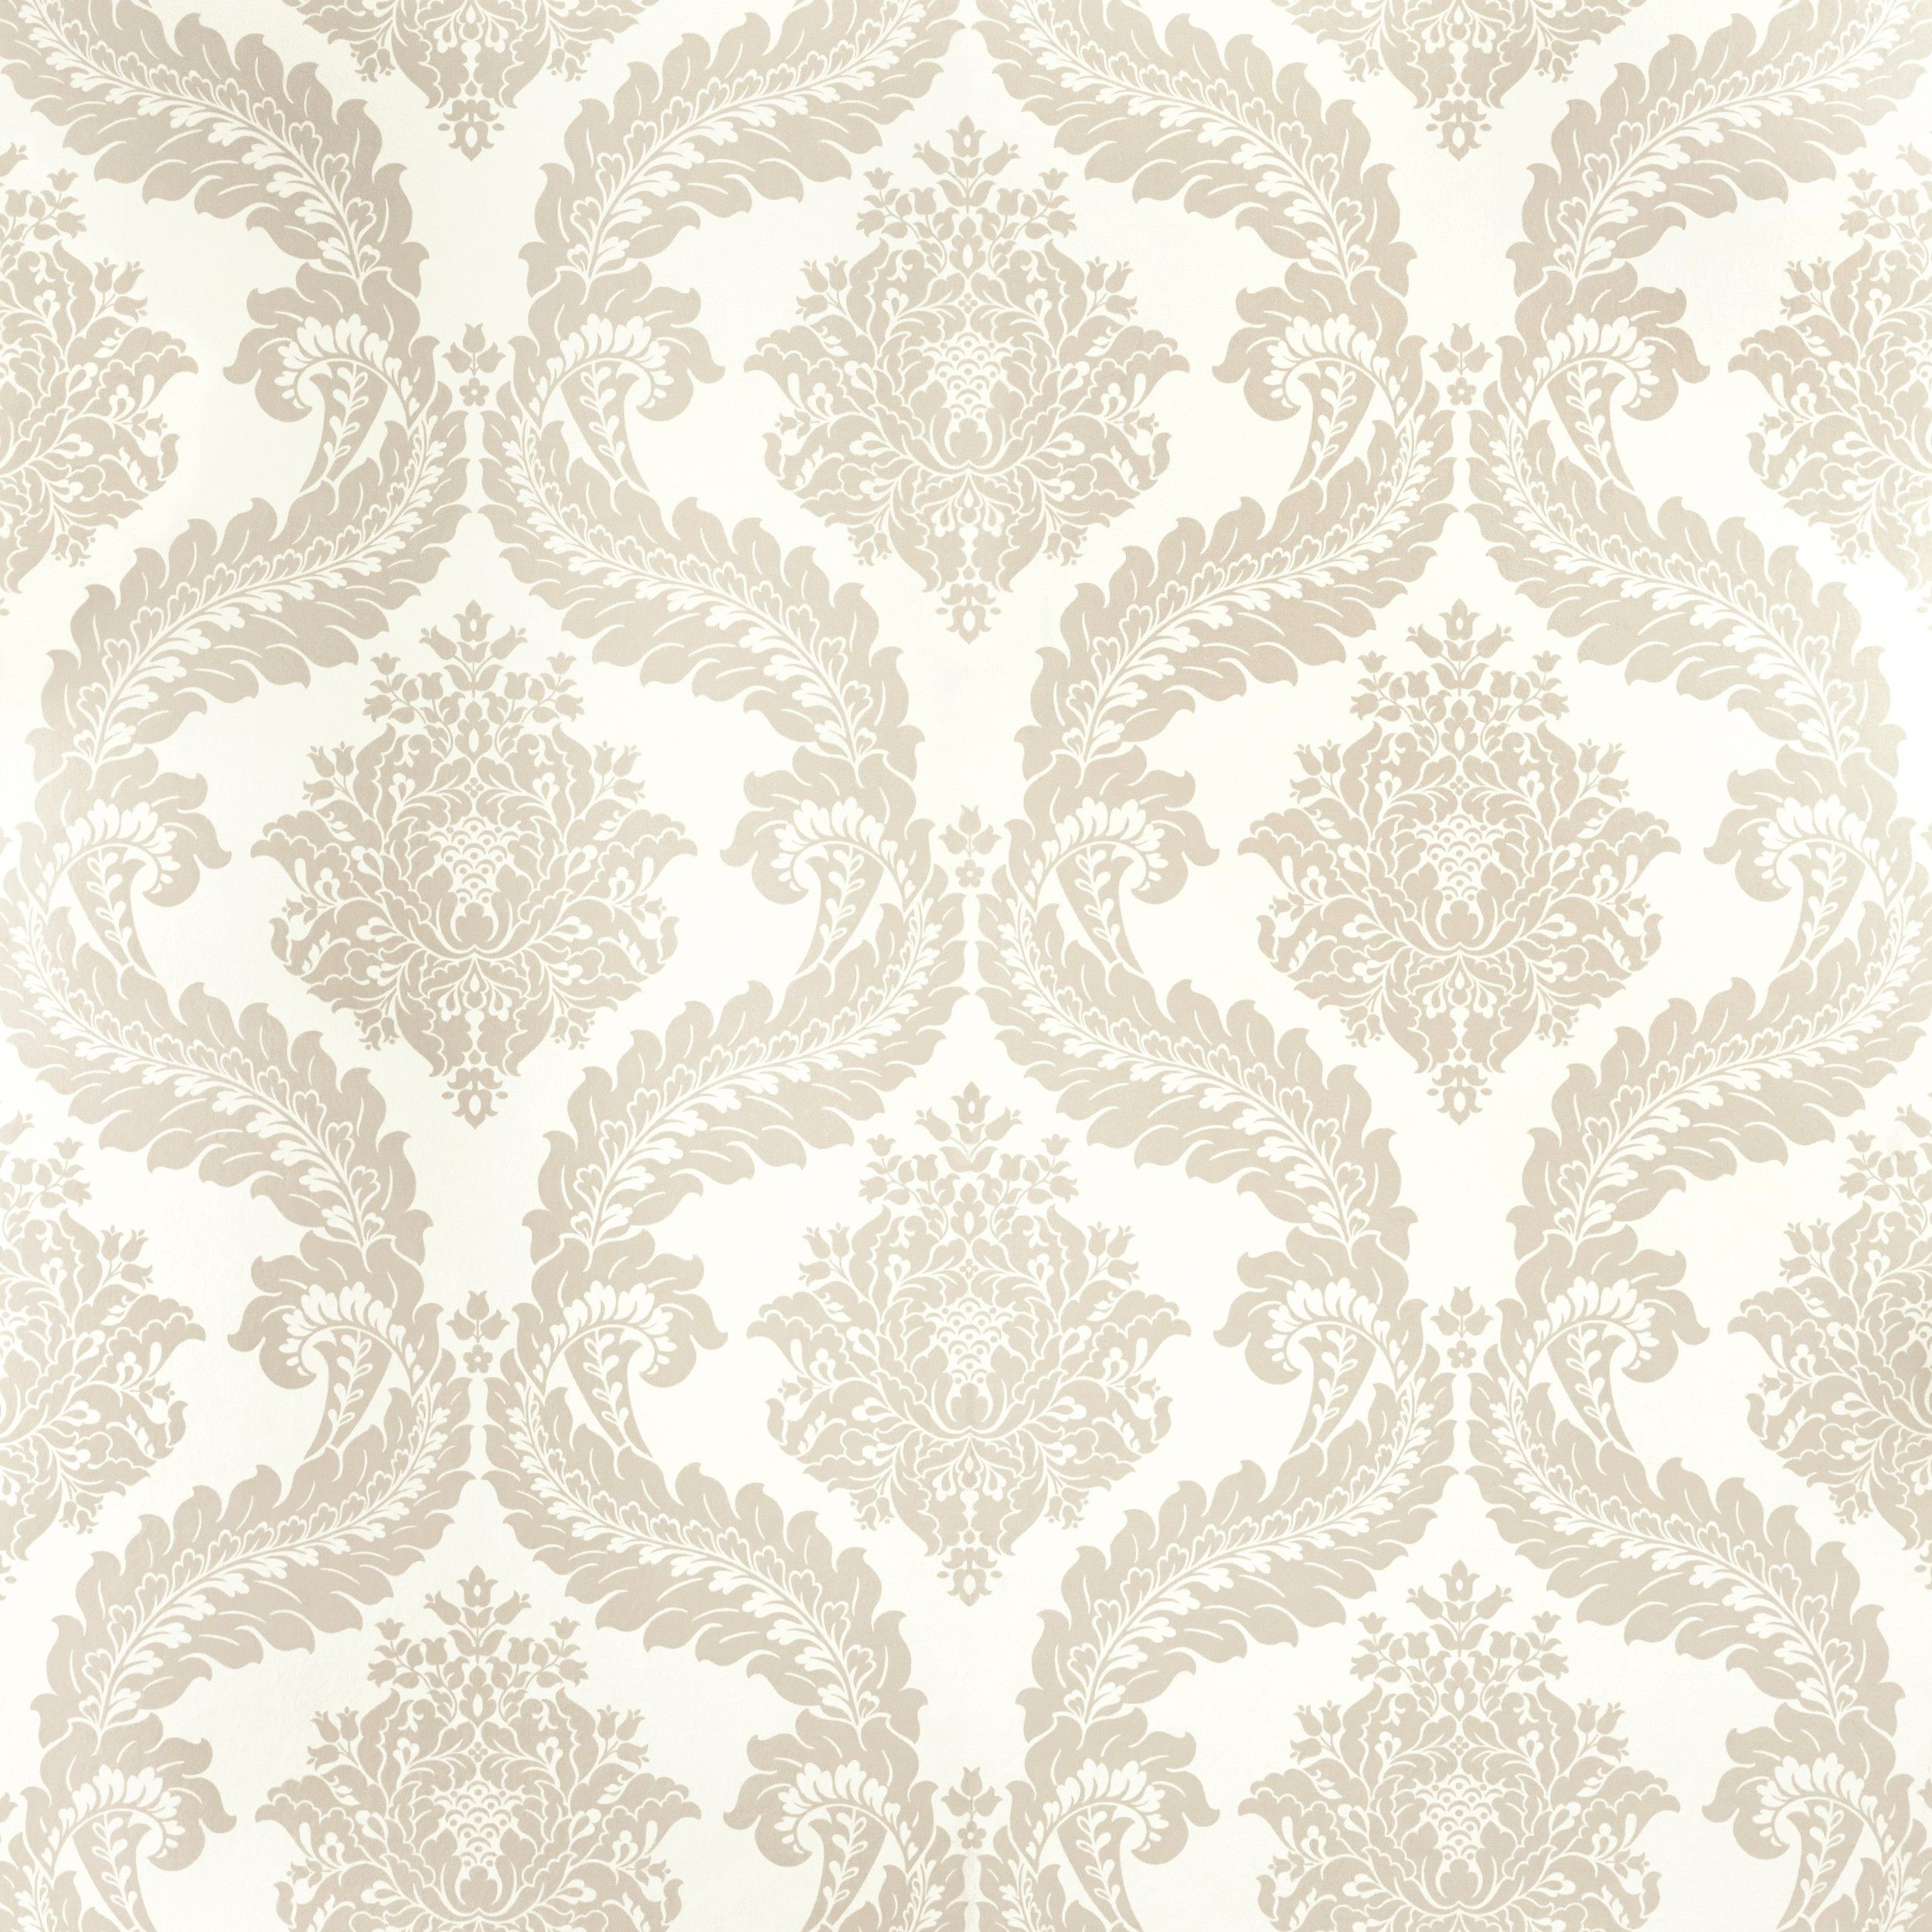 Tetbury Sable Patterned Wallpaper